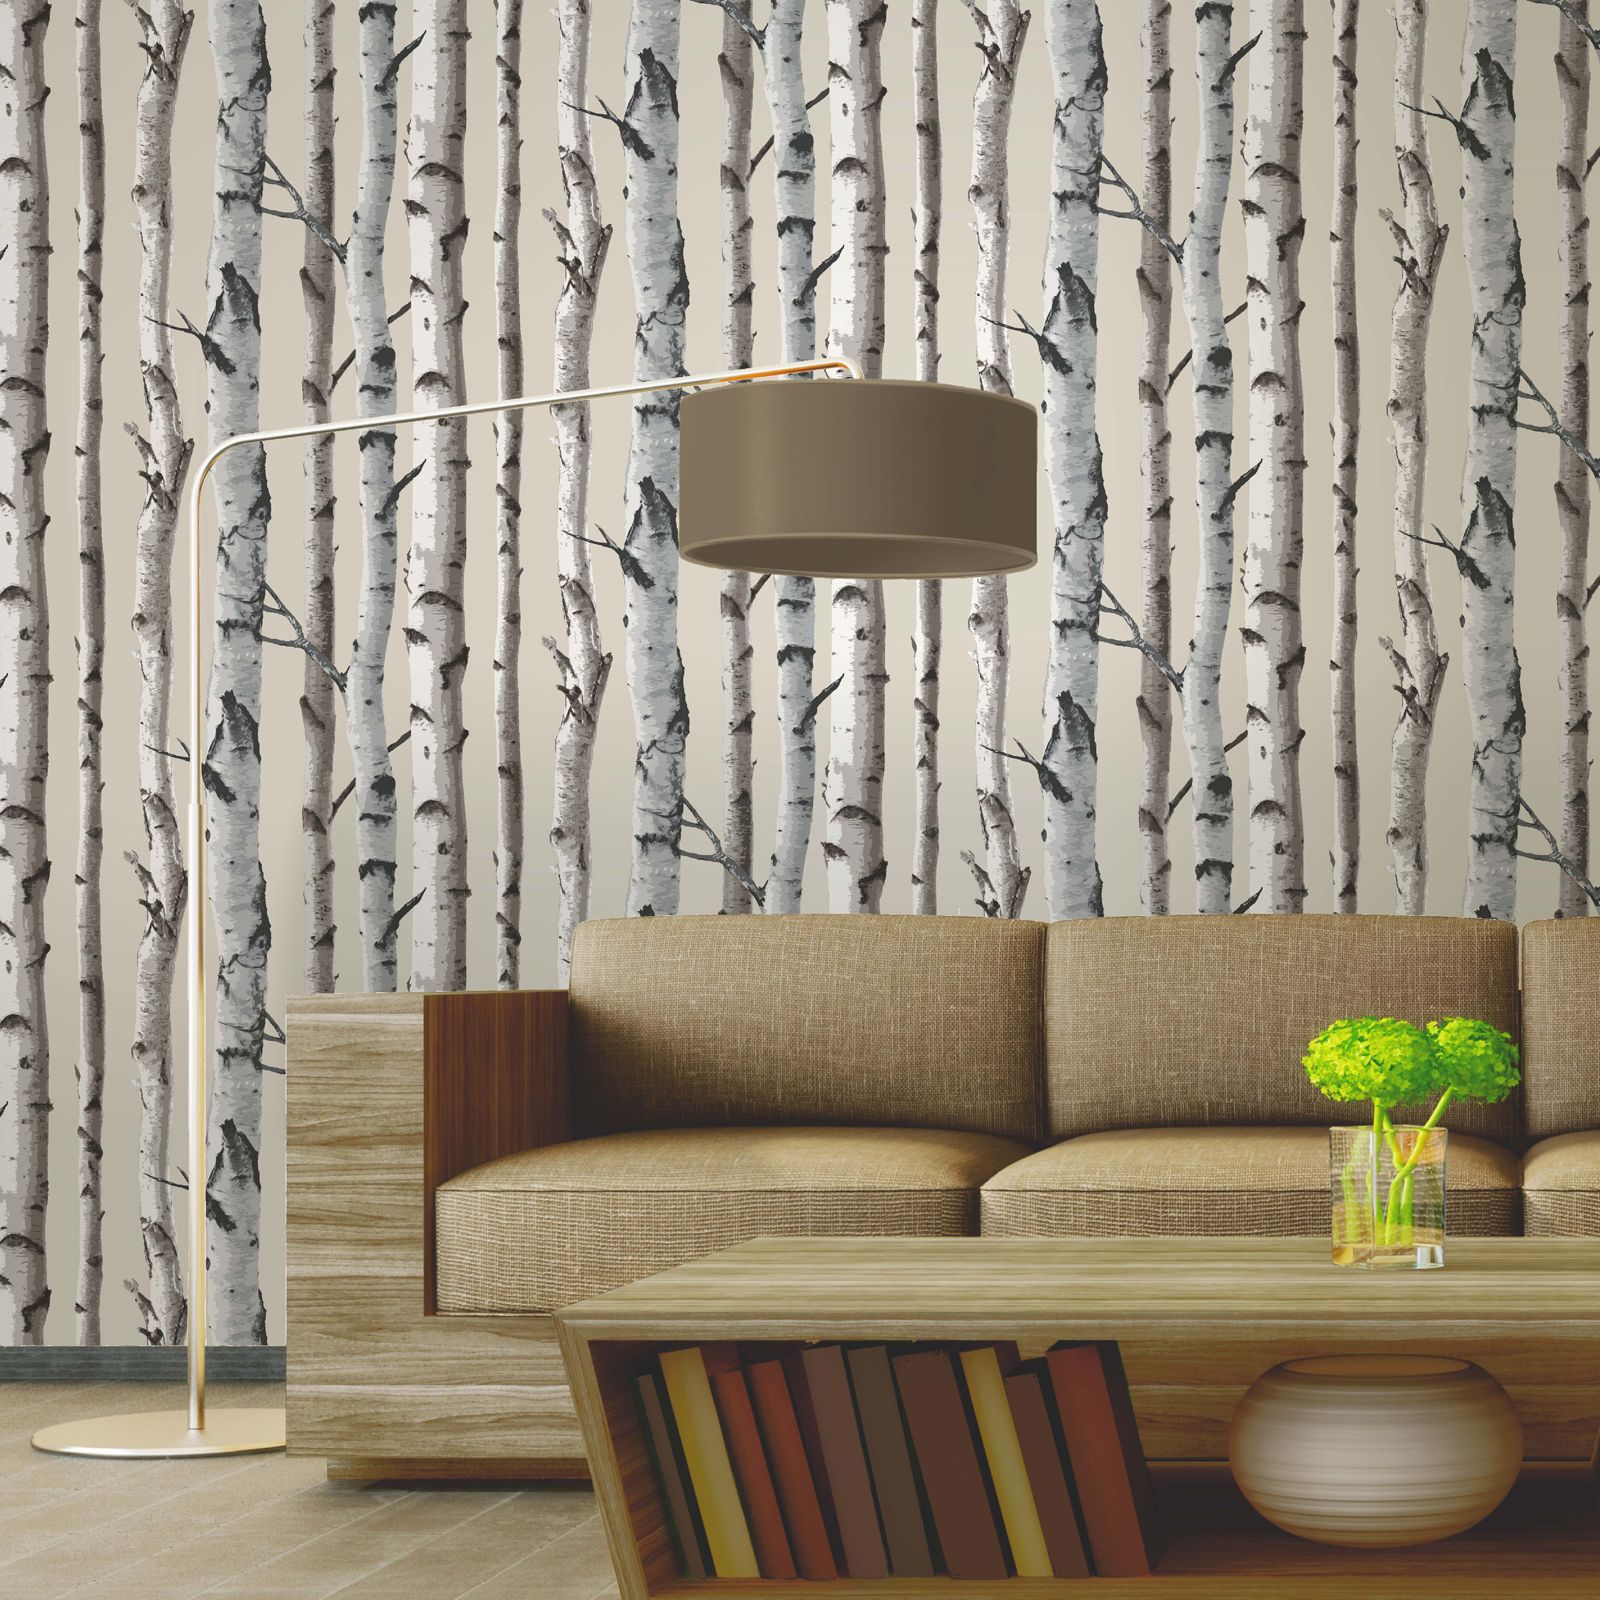 fine decor birch trees 10m wallpaper white silver new. Black Bedroom Furniture Sets. Home Design Ideas